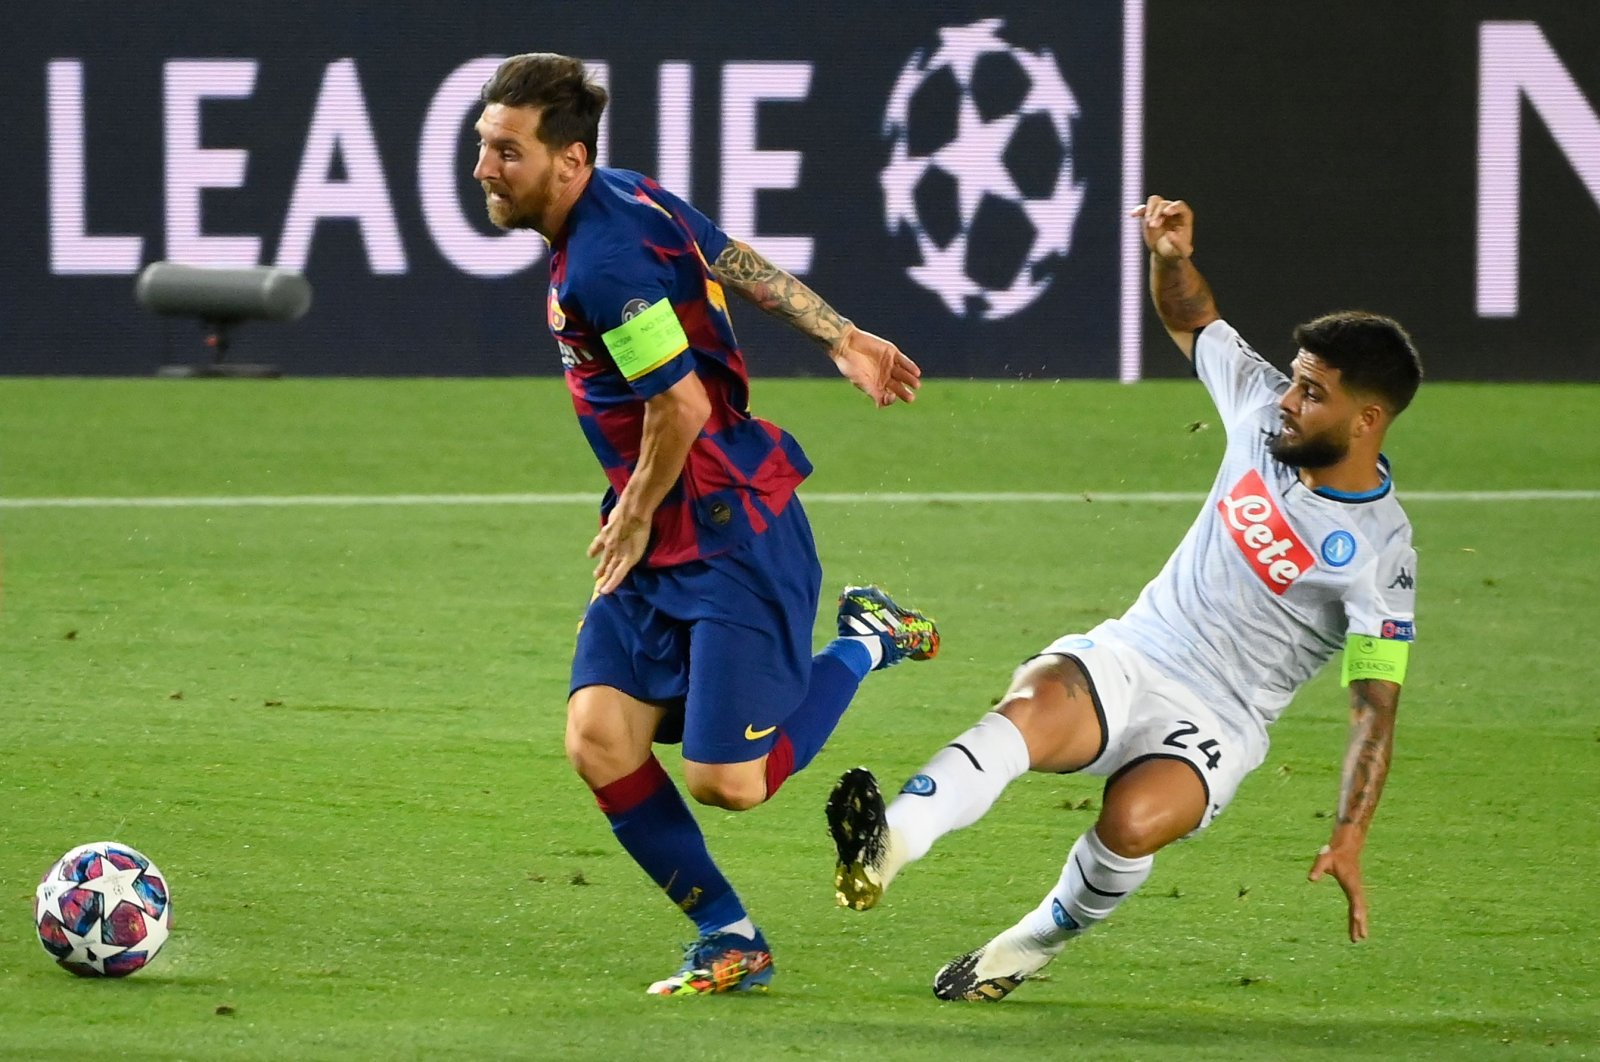 Barcelona's Lionel Messi (L) runs past Napoli's Lorenzo Insigne during the Champions League match in Barcelona, Spain, Aug. 8, 2020. (AFP Photo)